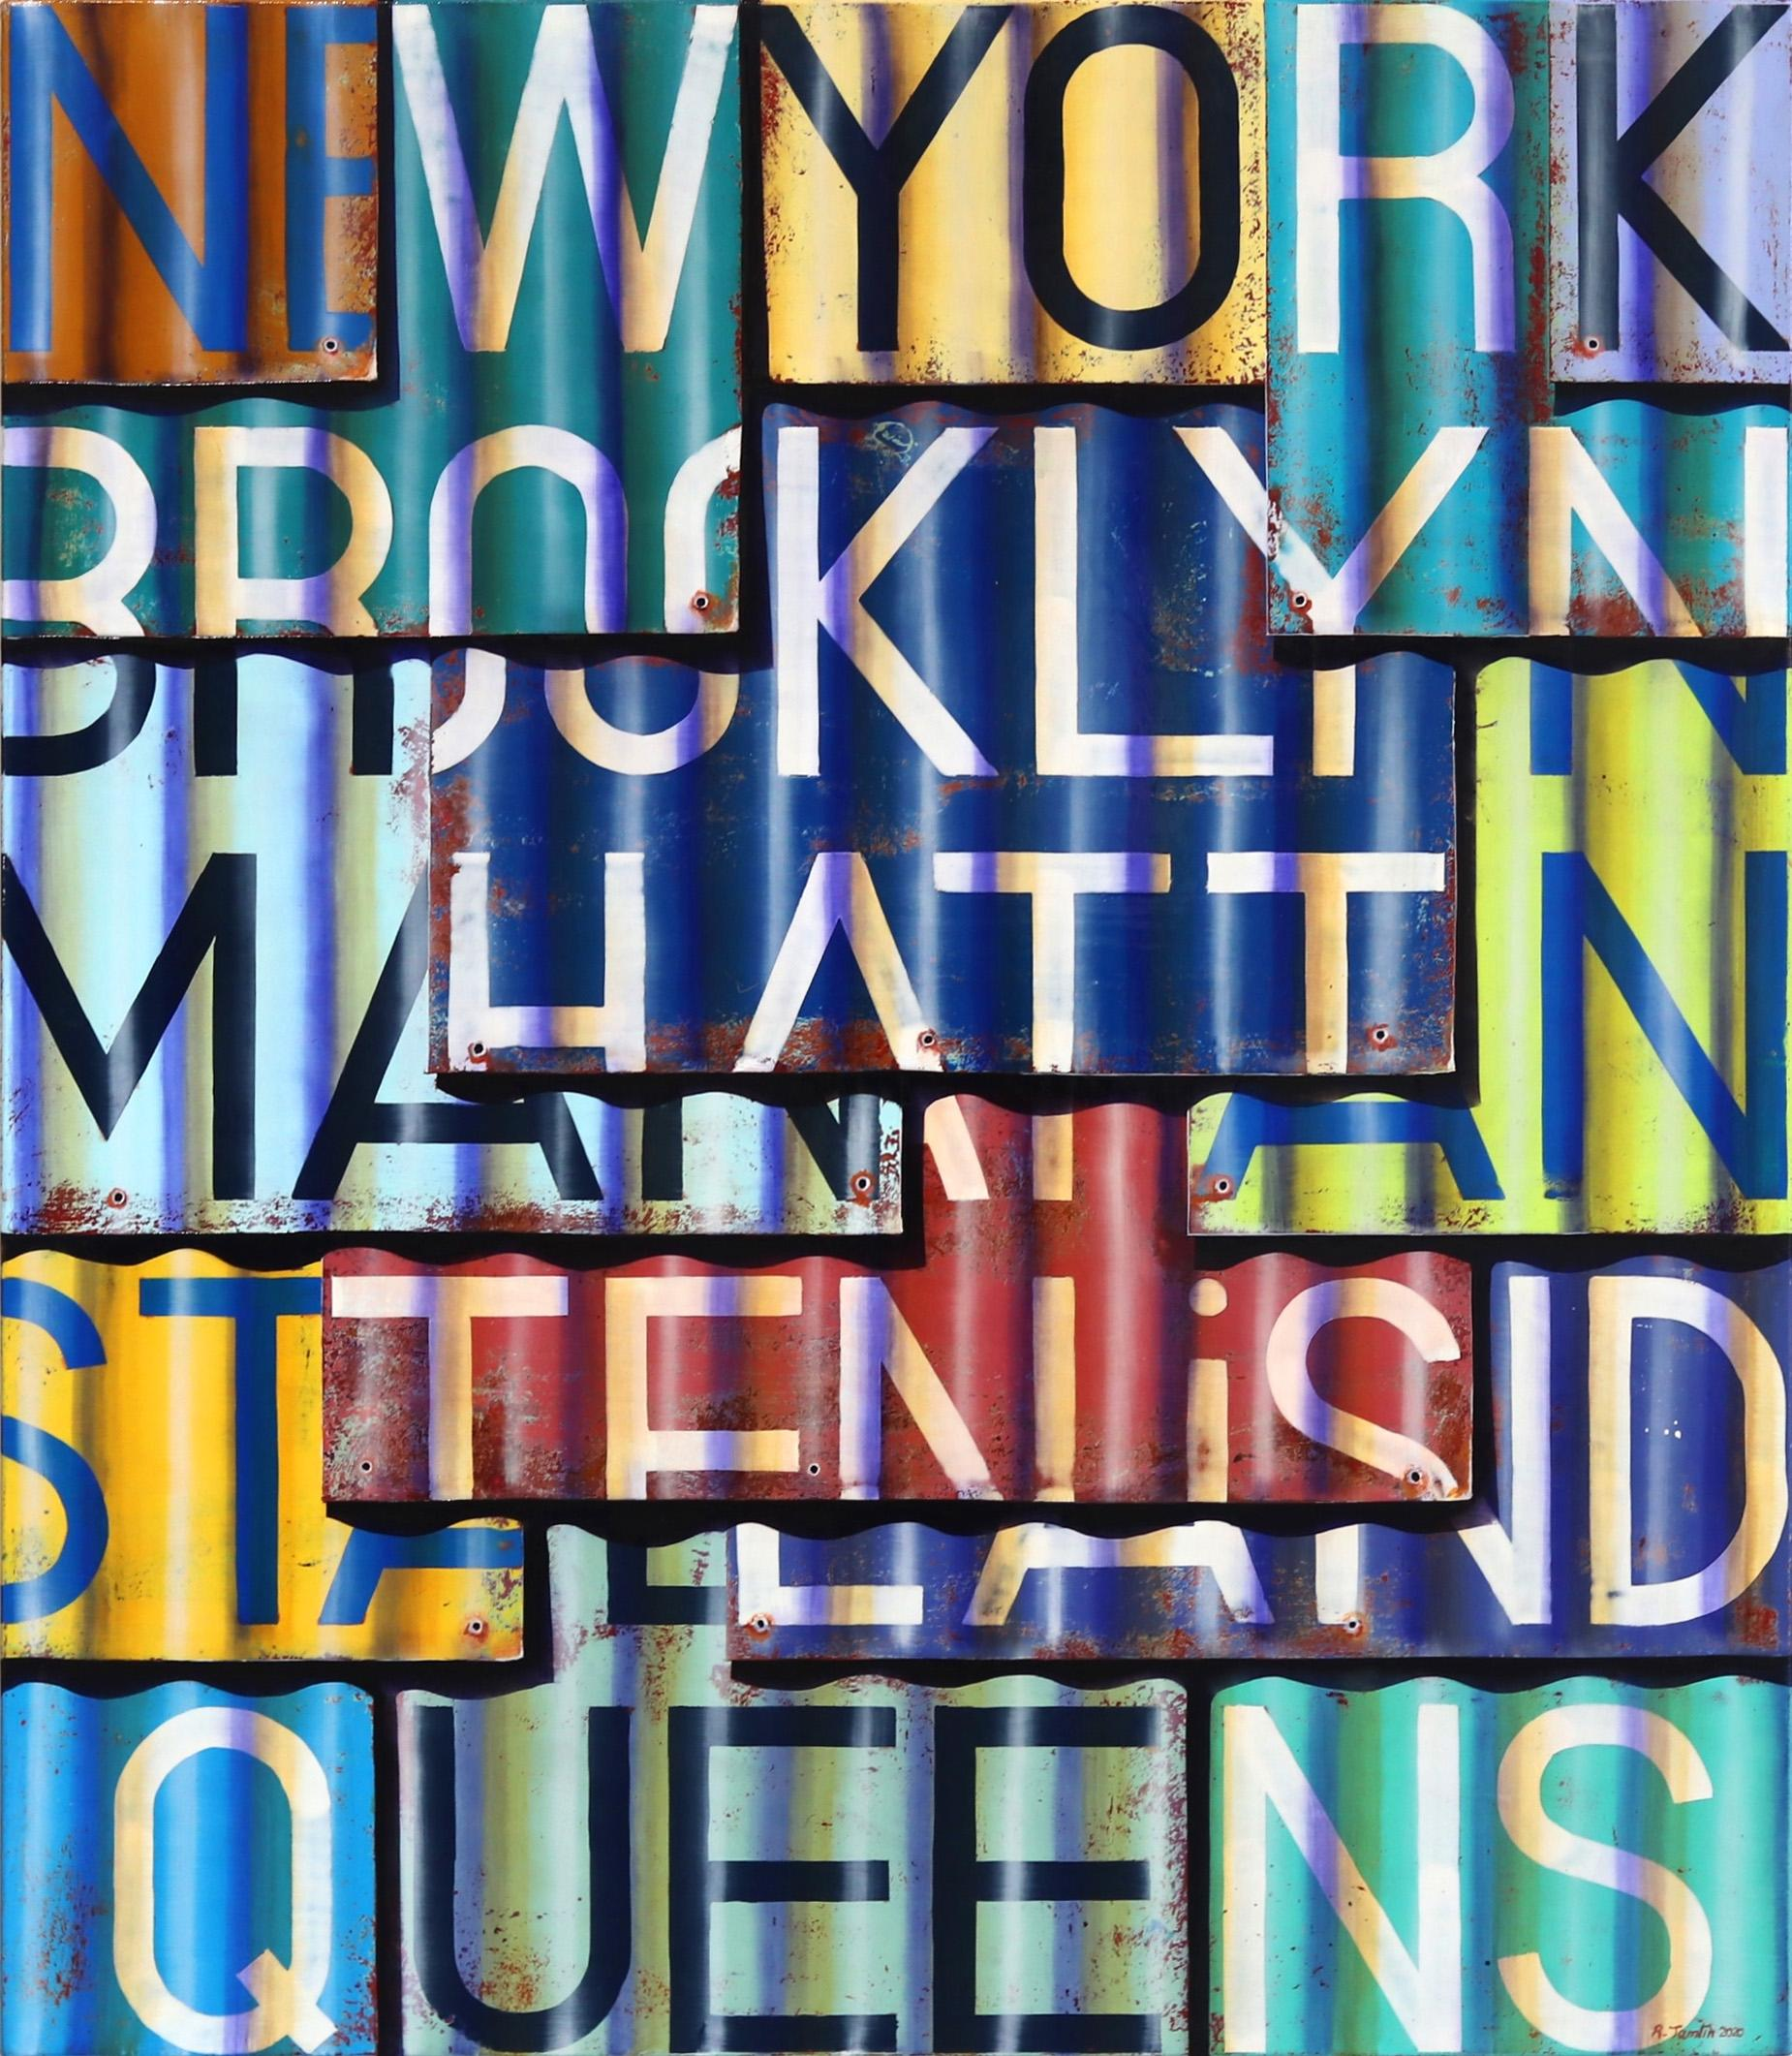 New York Boroughs - Photorealistic Oil and Enamel Painting on Canvas